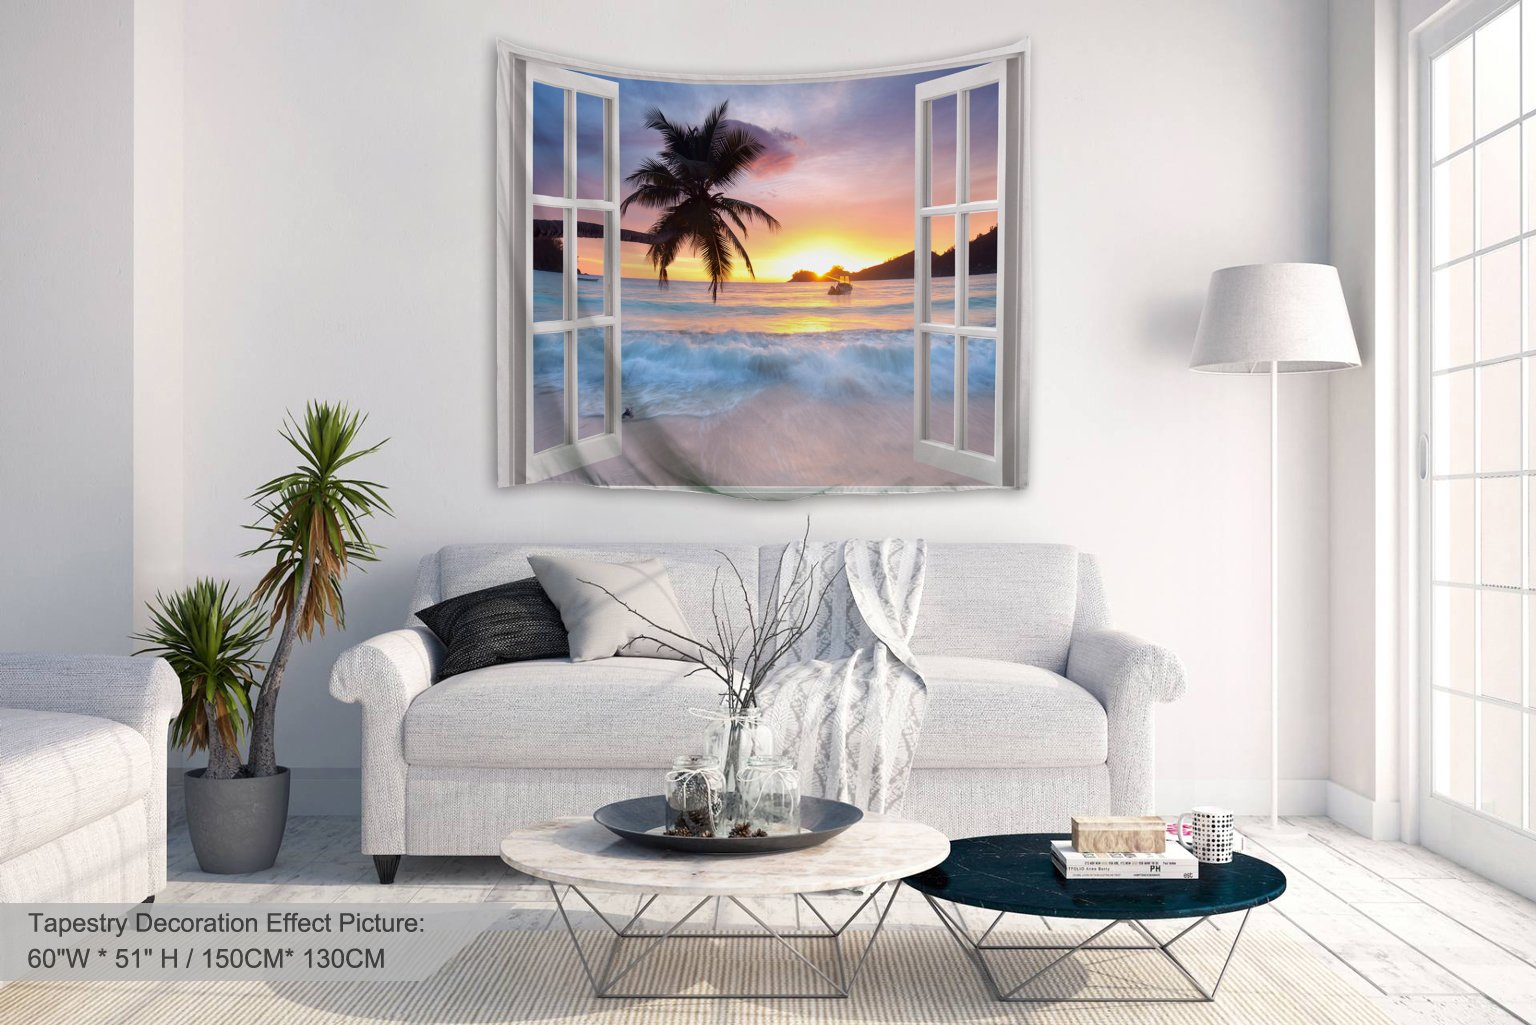 Alfalfa Wall Hanging Decor Nature Art Polyester Fabric Tapestry, Ocean Beach Theme, For Dorm Room, Bedroom,Living Room - 60'' W x 51'' L (150cmx130cm) - Seaside Sunrise Out Of The Window